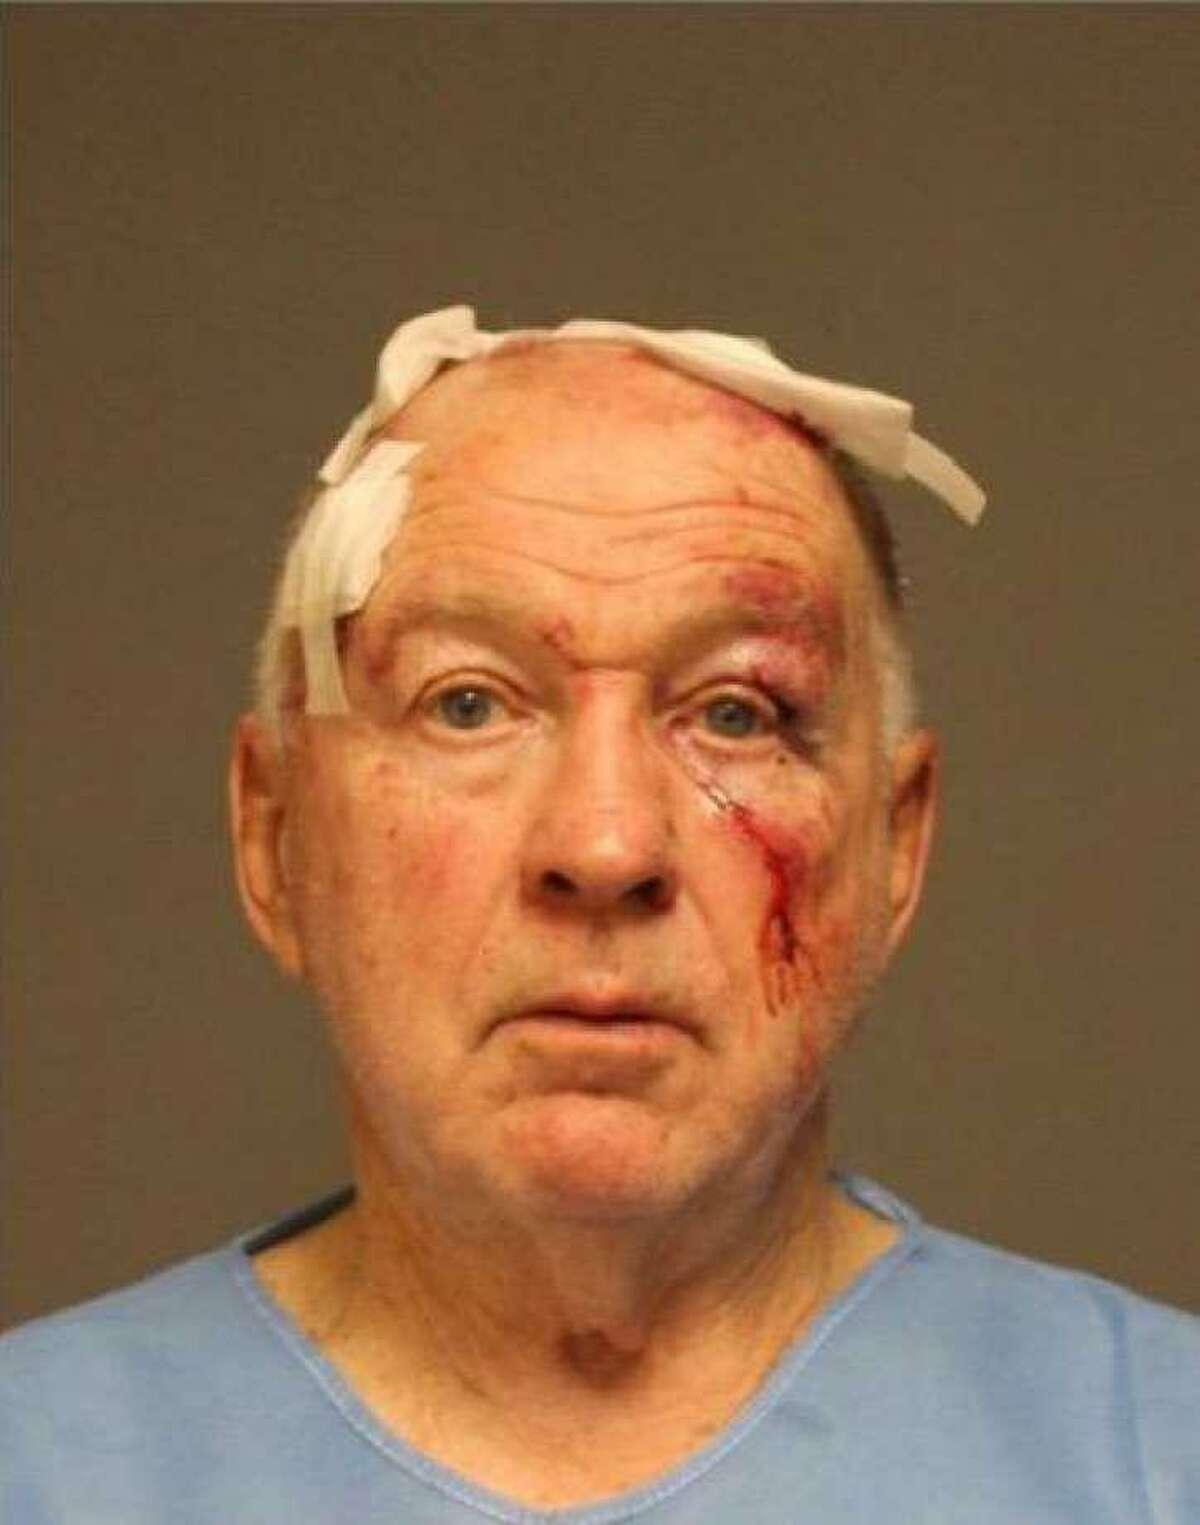 FEB. 3, 2019 9:30 P.M. - James Taylor allegedly shoots ex-wife Catherine Taylor Police said Catherine Taylor's son, Donald Garamella, ran into his living room and found James Taylor, 75, holding a .22 caliber rifle and standing over 70-year-old Catherine Taylor, who was bleeding from the head and motionless. Police said Taylor then tried loading another round into the rifle and leveling it at Garamella. But Garamella tackled him and struck Taylor several times in self-defense while calling 911, police said.